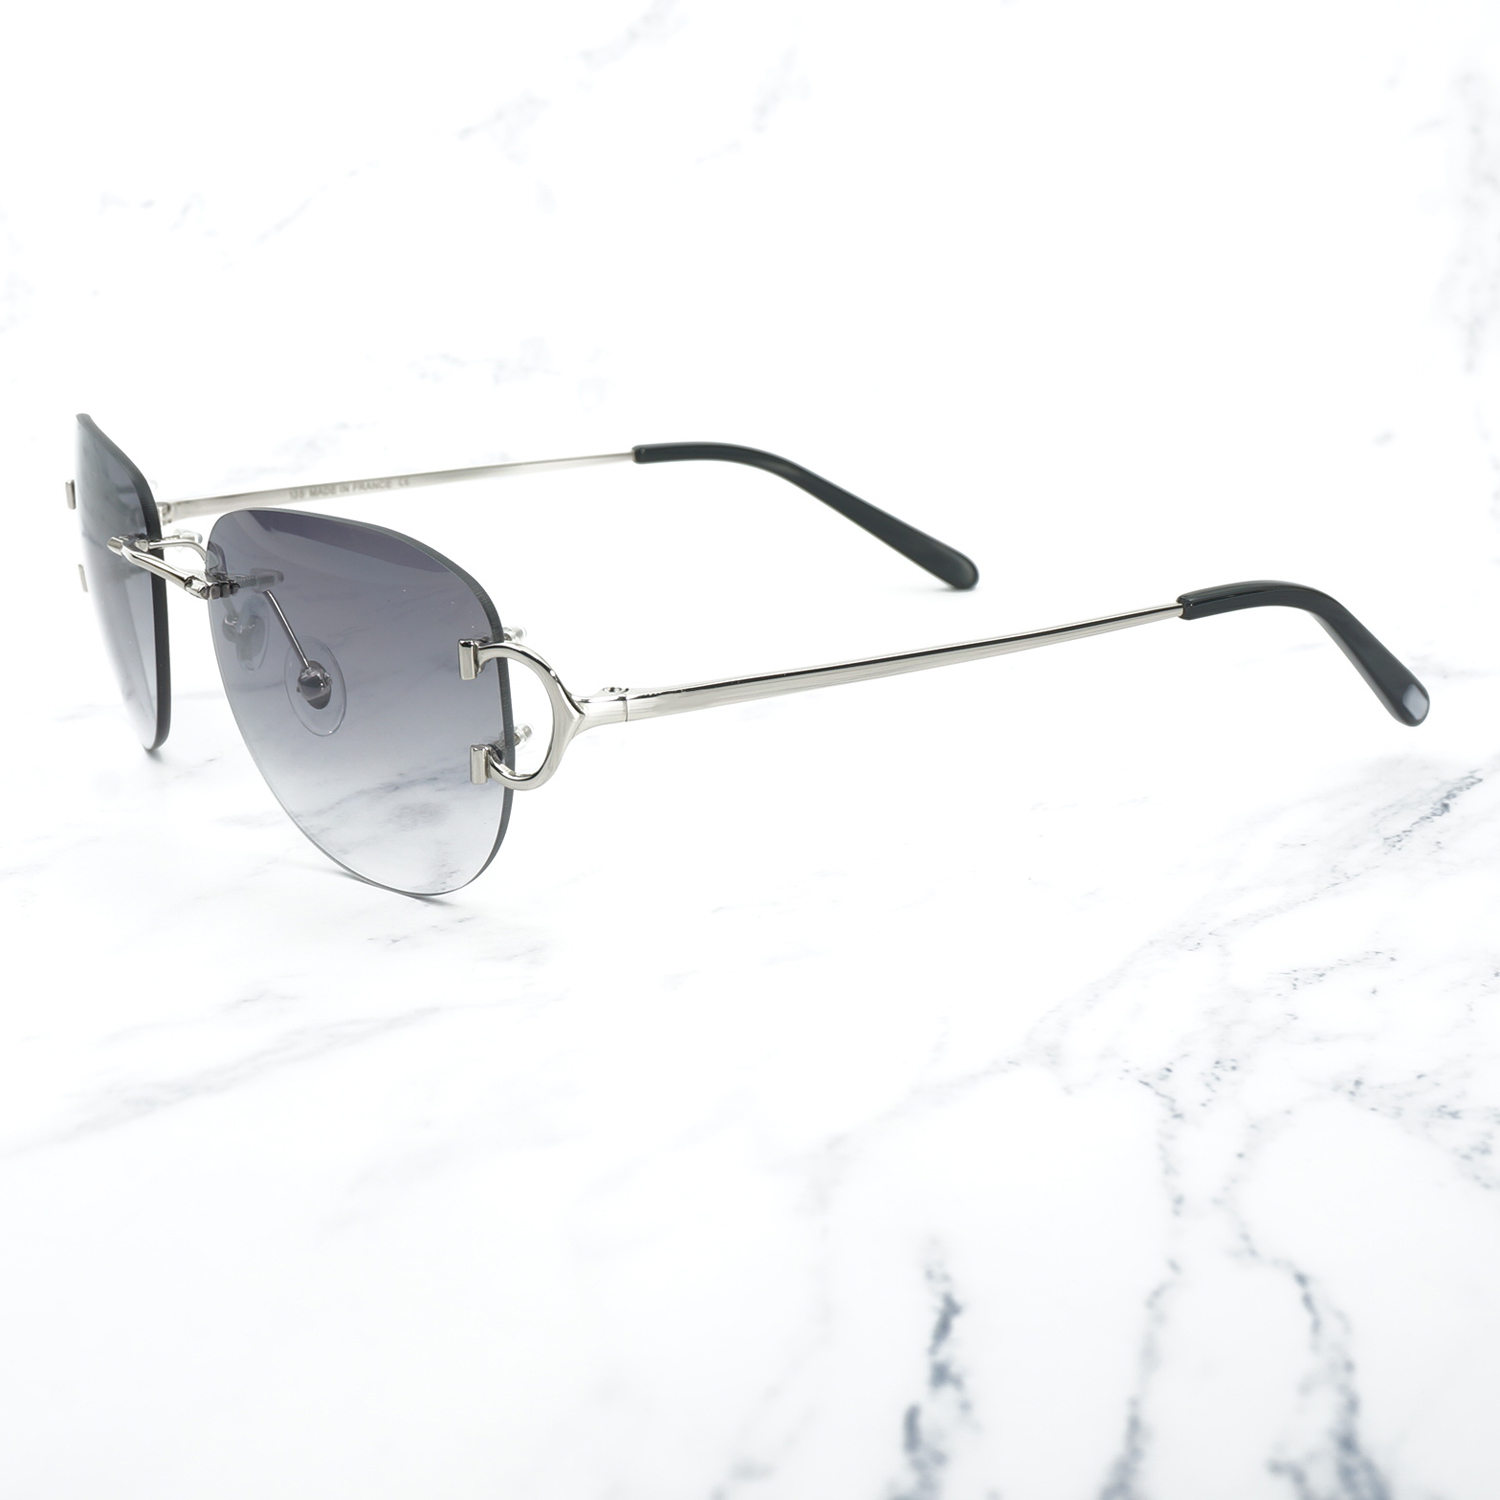 Image 5 - Vintage Pilot Sunglasses for Men Retro Carter Glasses Frame for Women A3 Wholesale Men Sunglass Promotion Female Glass Shades-in Women's Sunglasses from Apparel Accessories